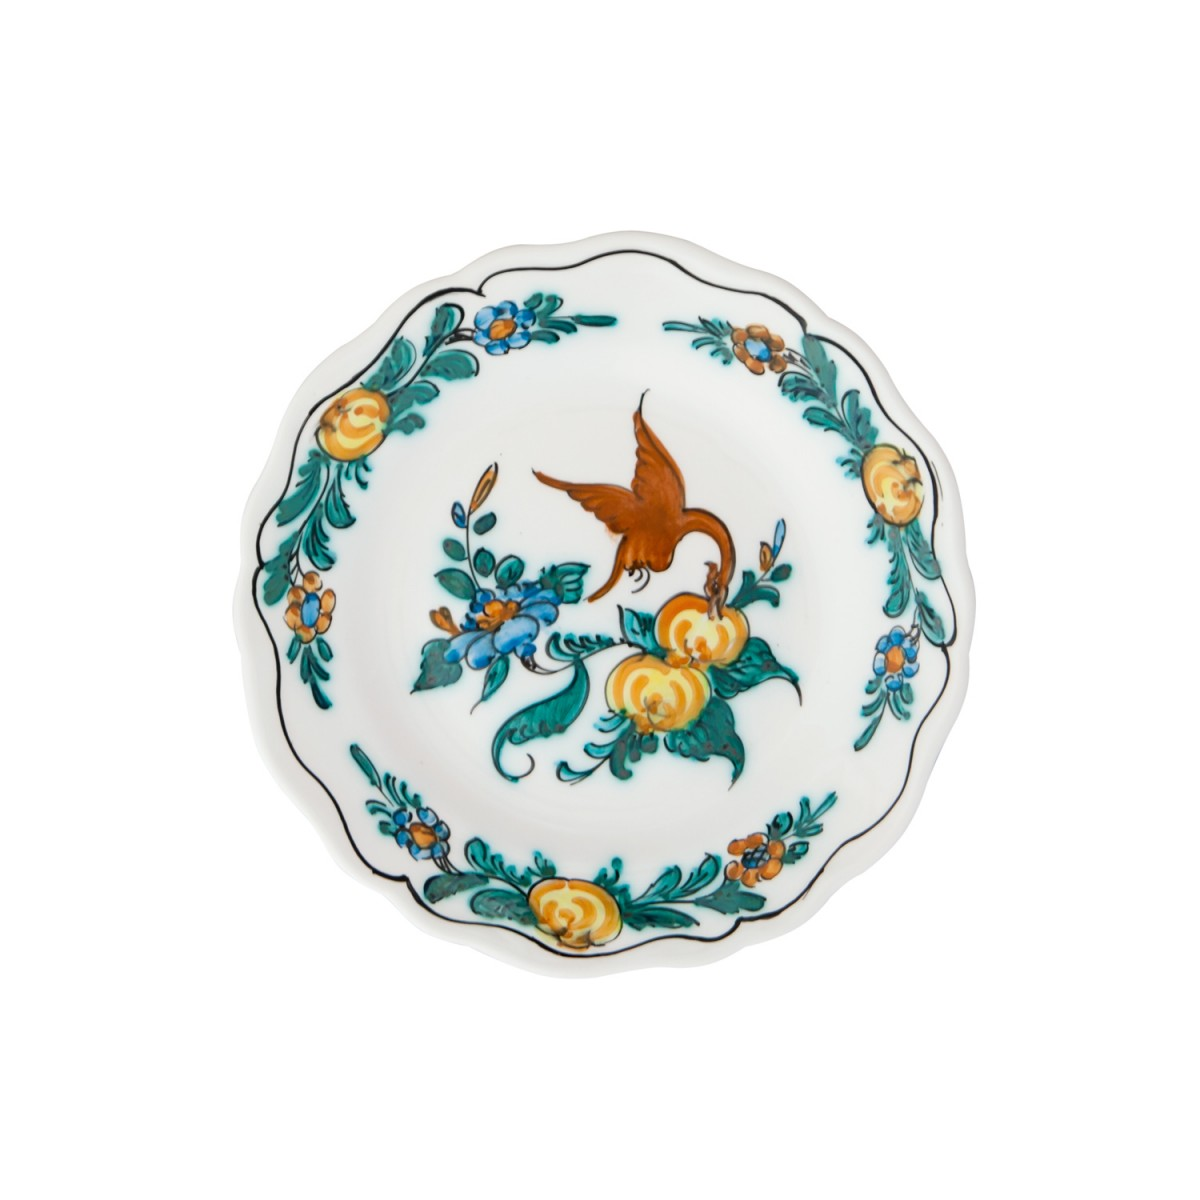 Ceramic_Hand_painted_Fruit_and_Decorative_Plate-Exotic_Bird-1